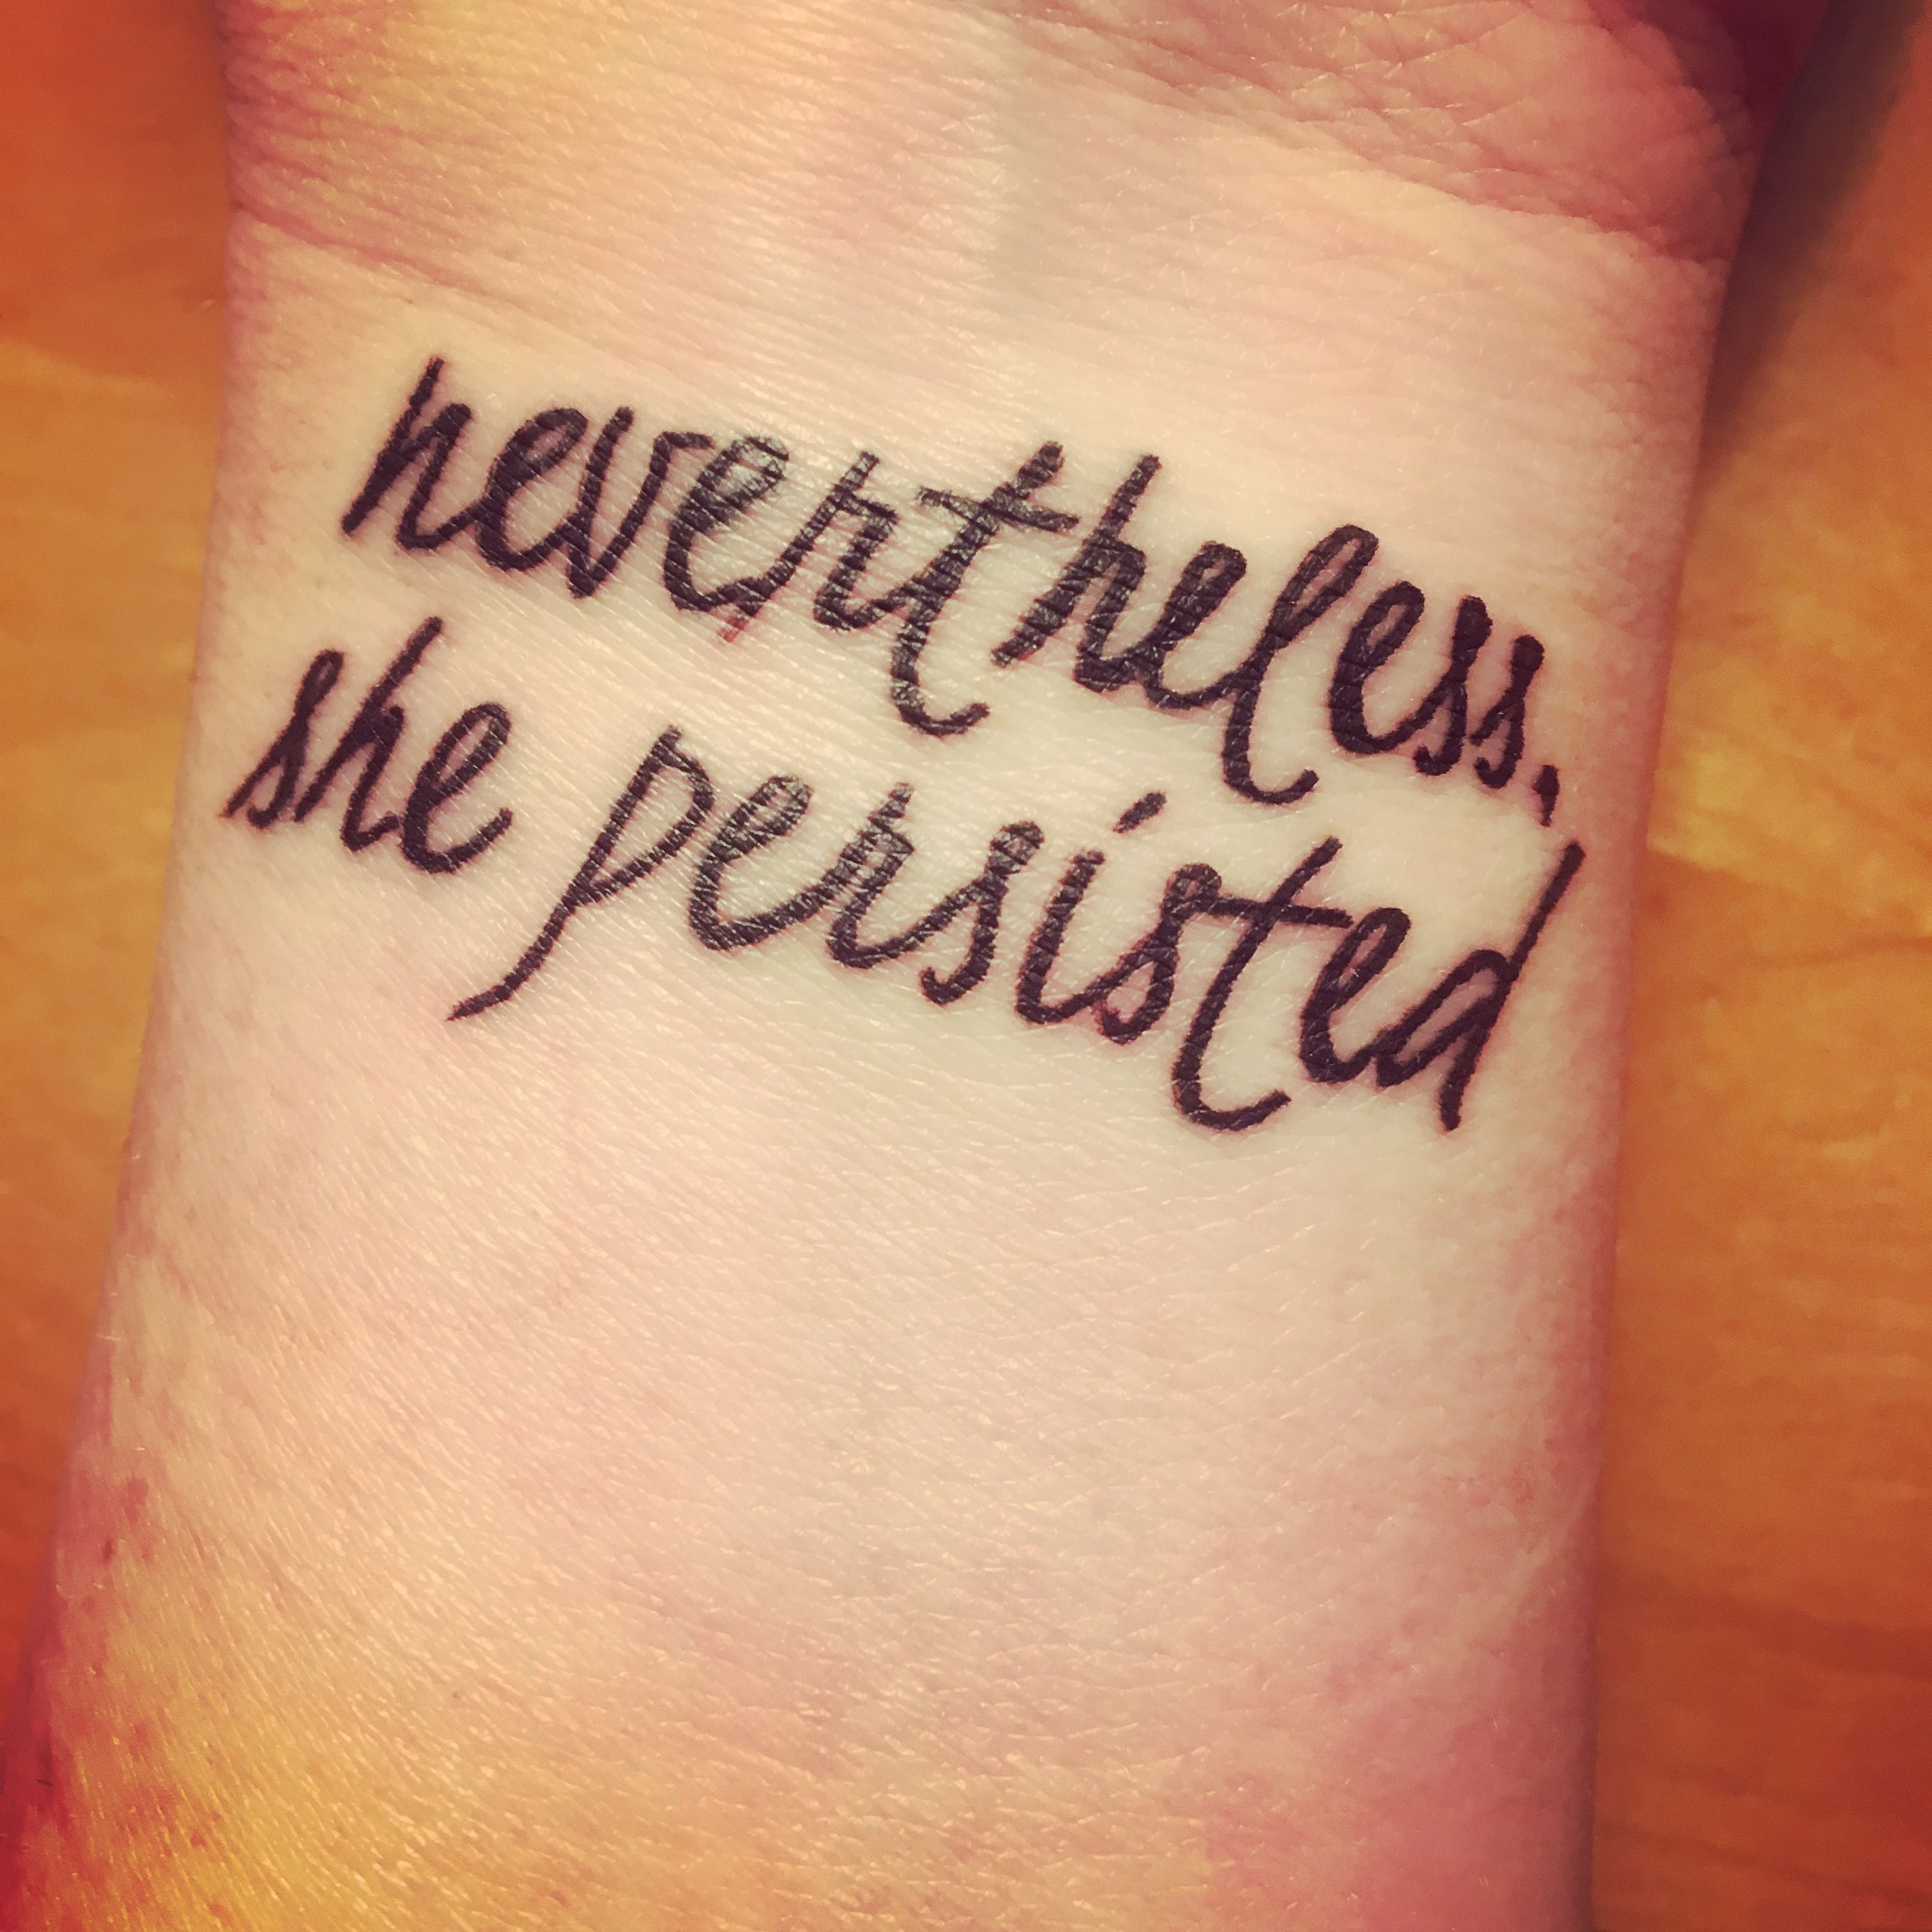 Tattoo Ideas Quotes On Addiction Sobriety Recovery: Tattoo. Nevertheless She Persisted